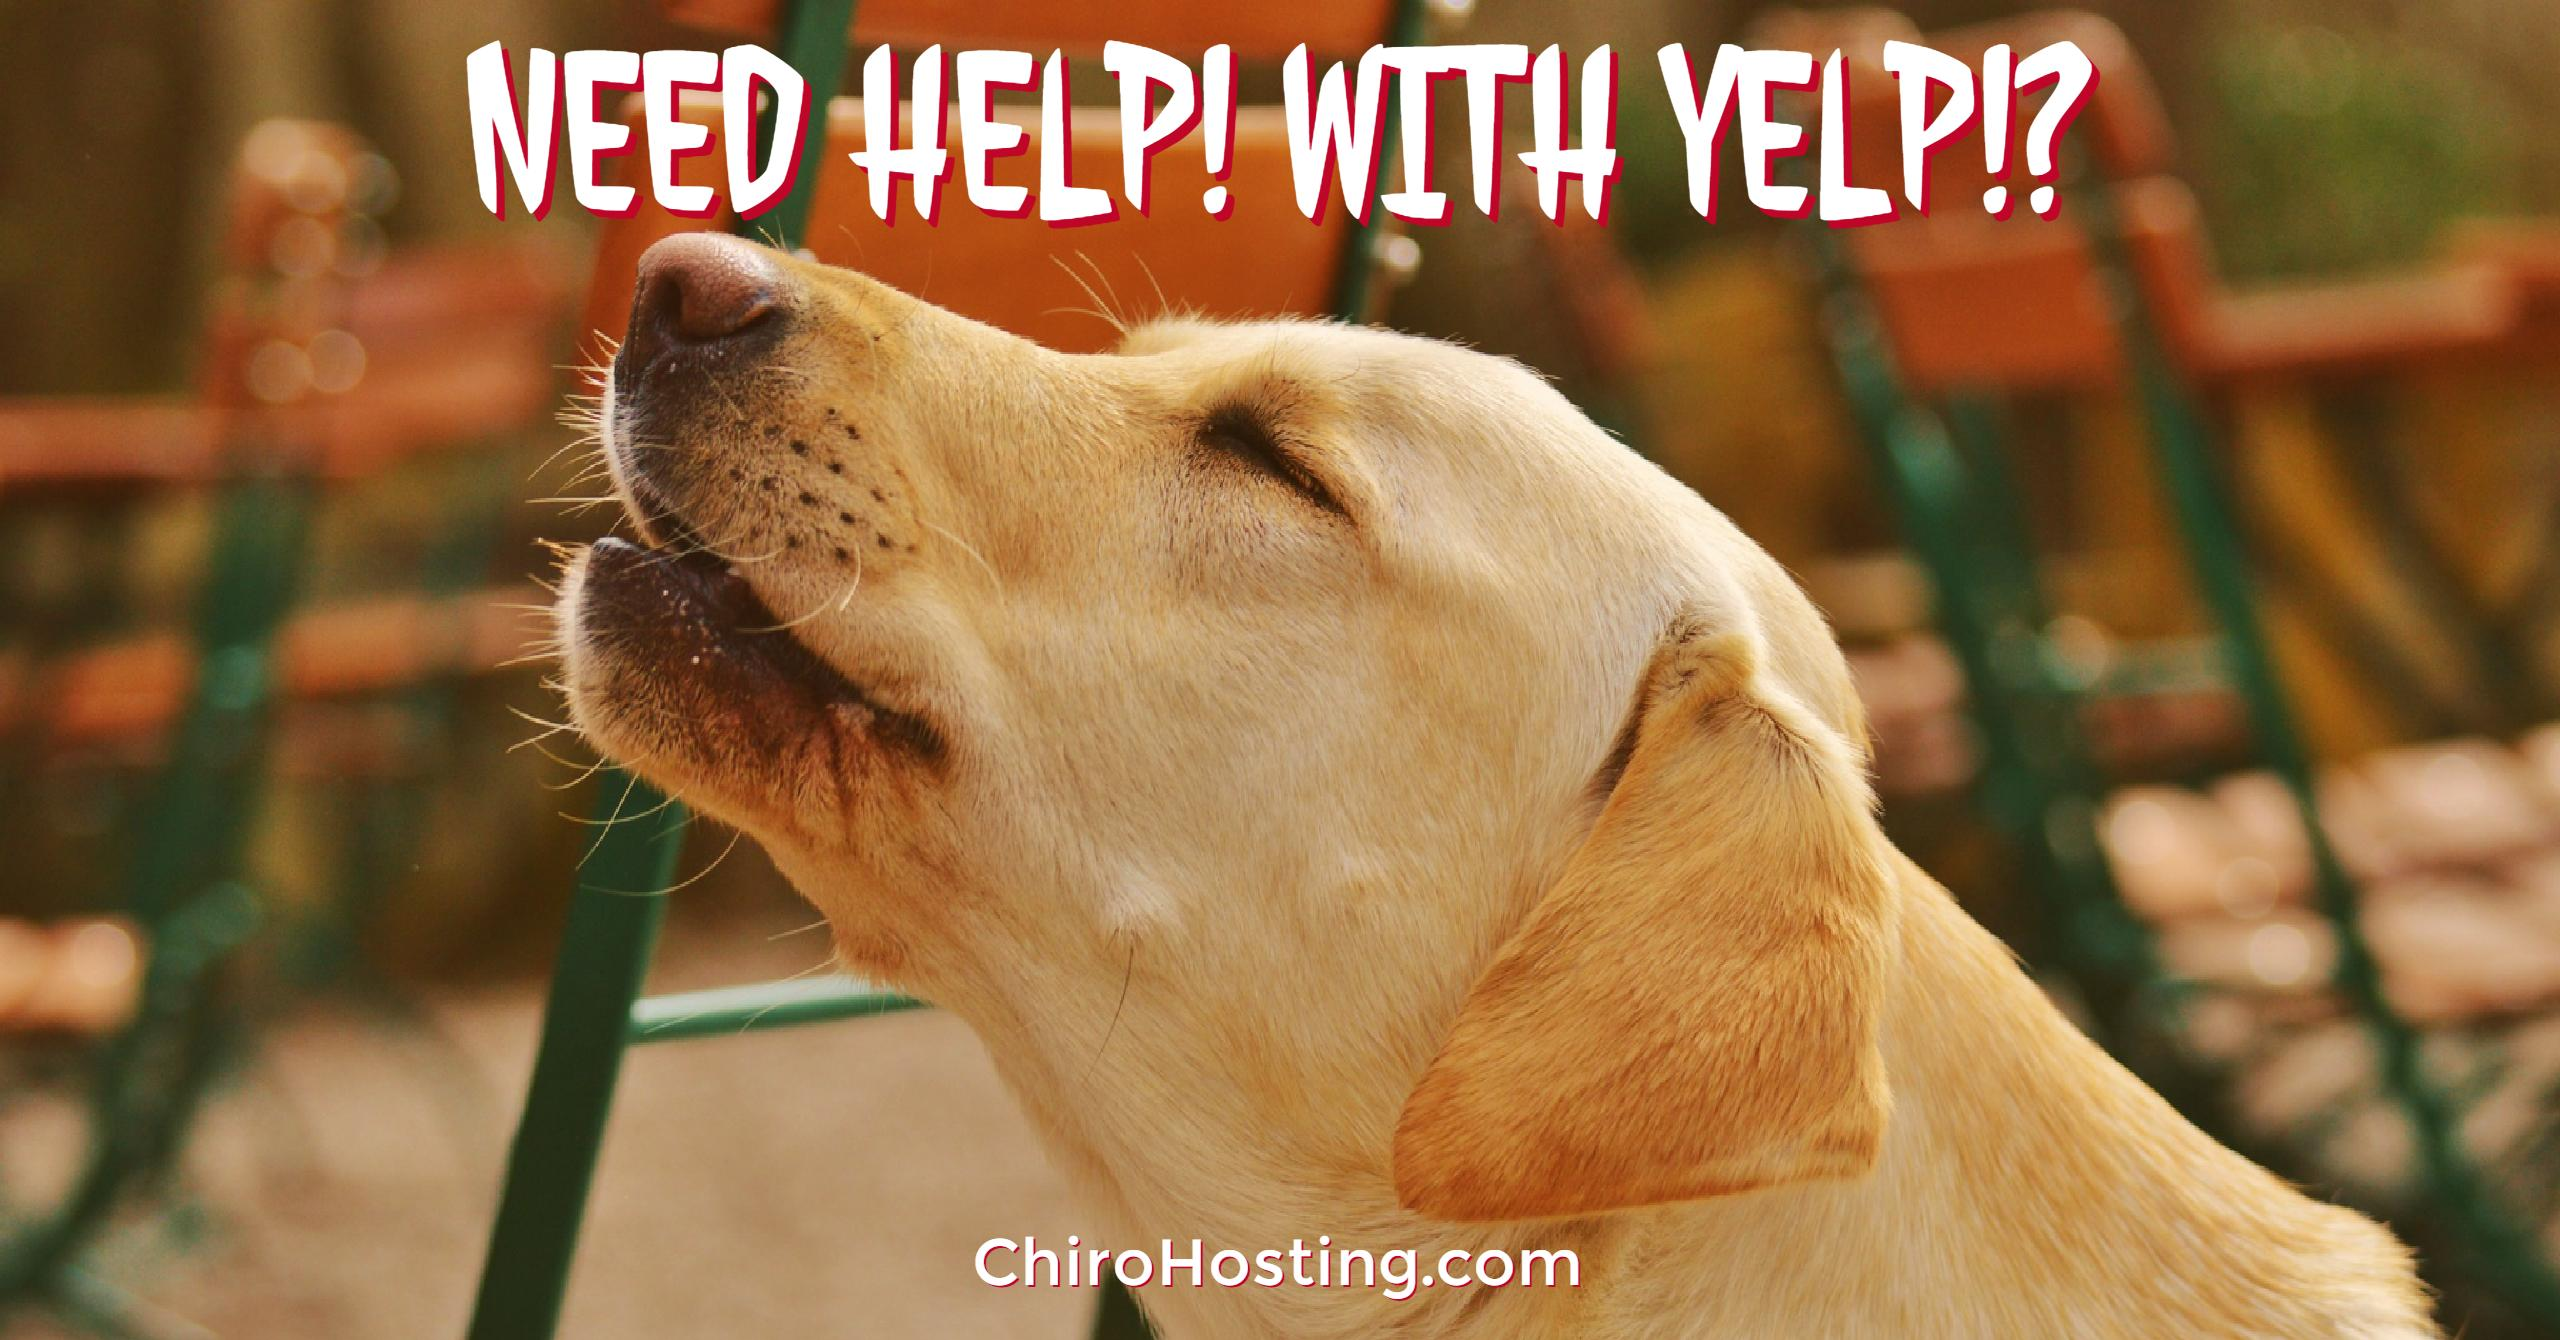 Need HELP With YELP Reviews? We've Got You Covered!